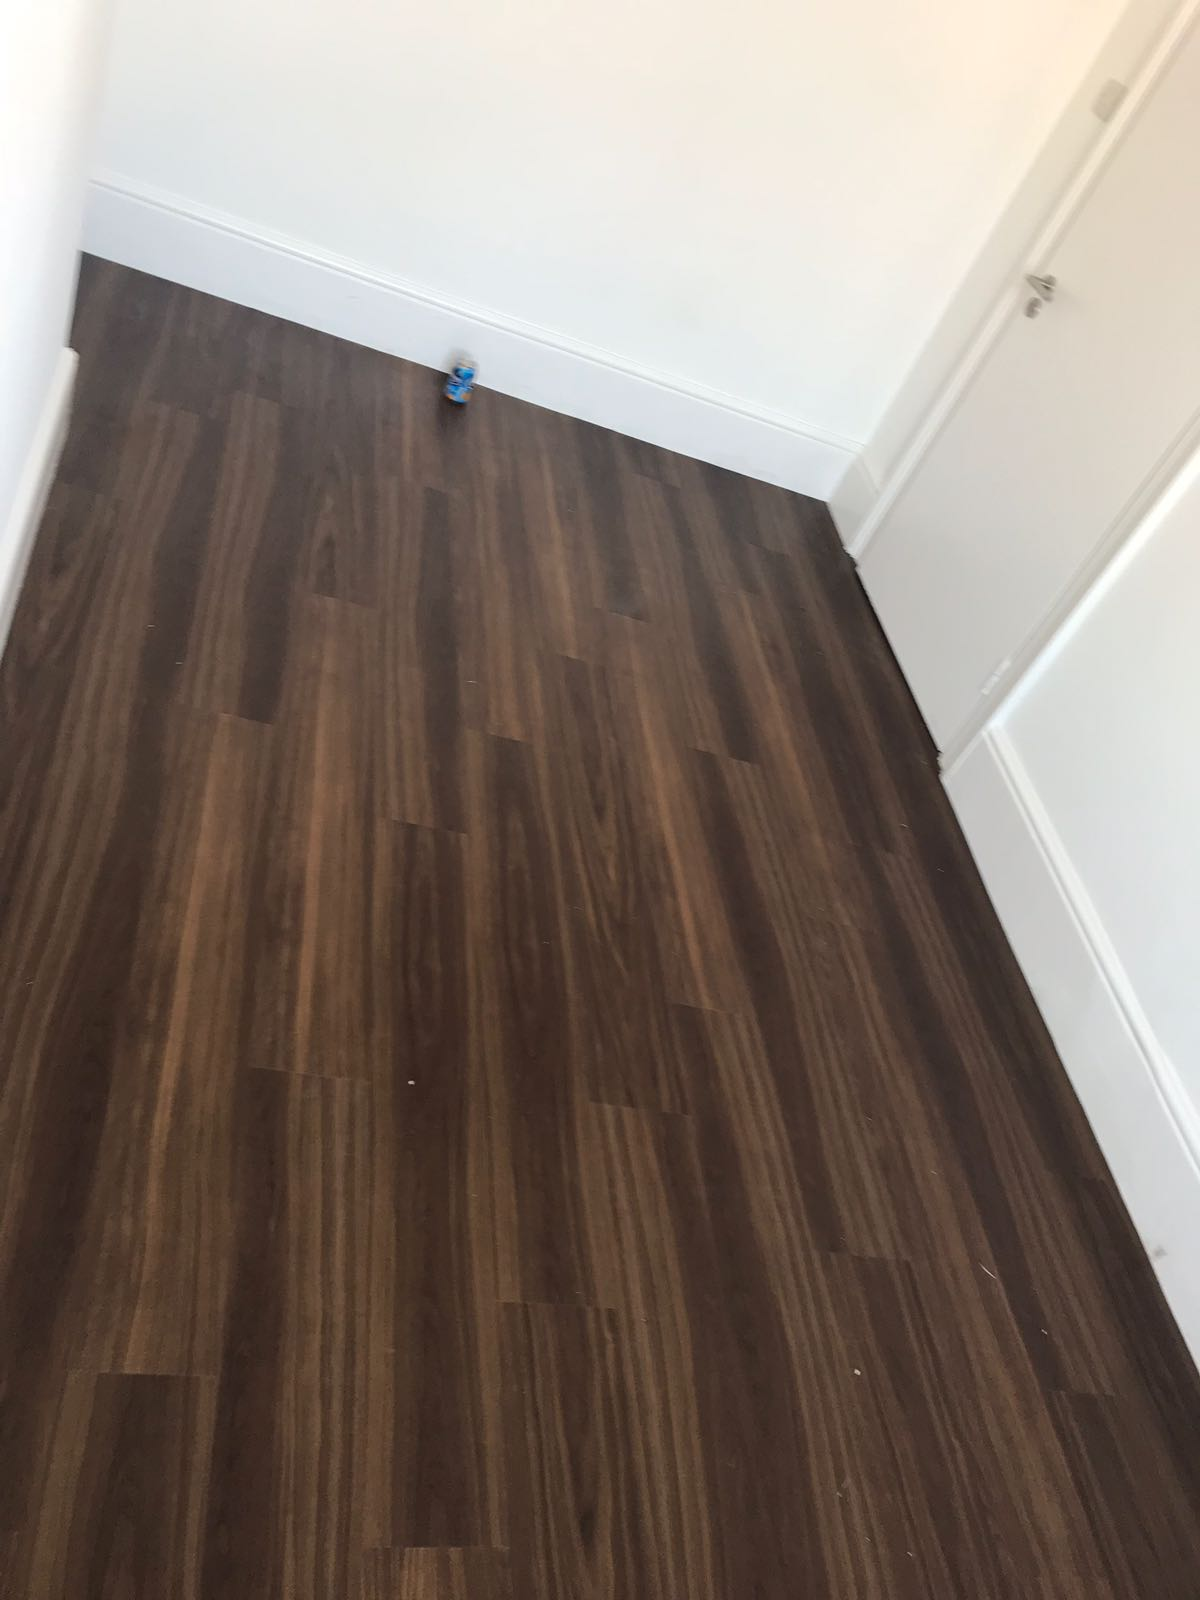 2018-04-24_Amtico Flooring Installed In Chelsea Residence (10)